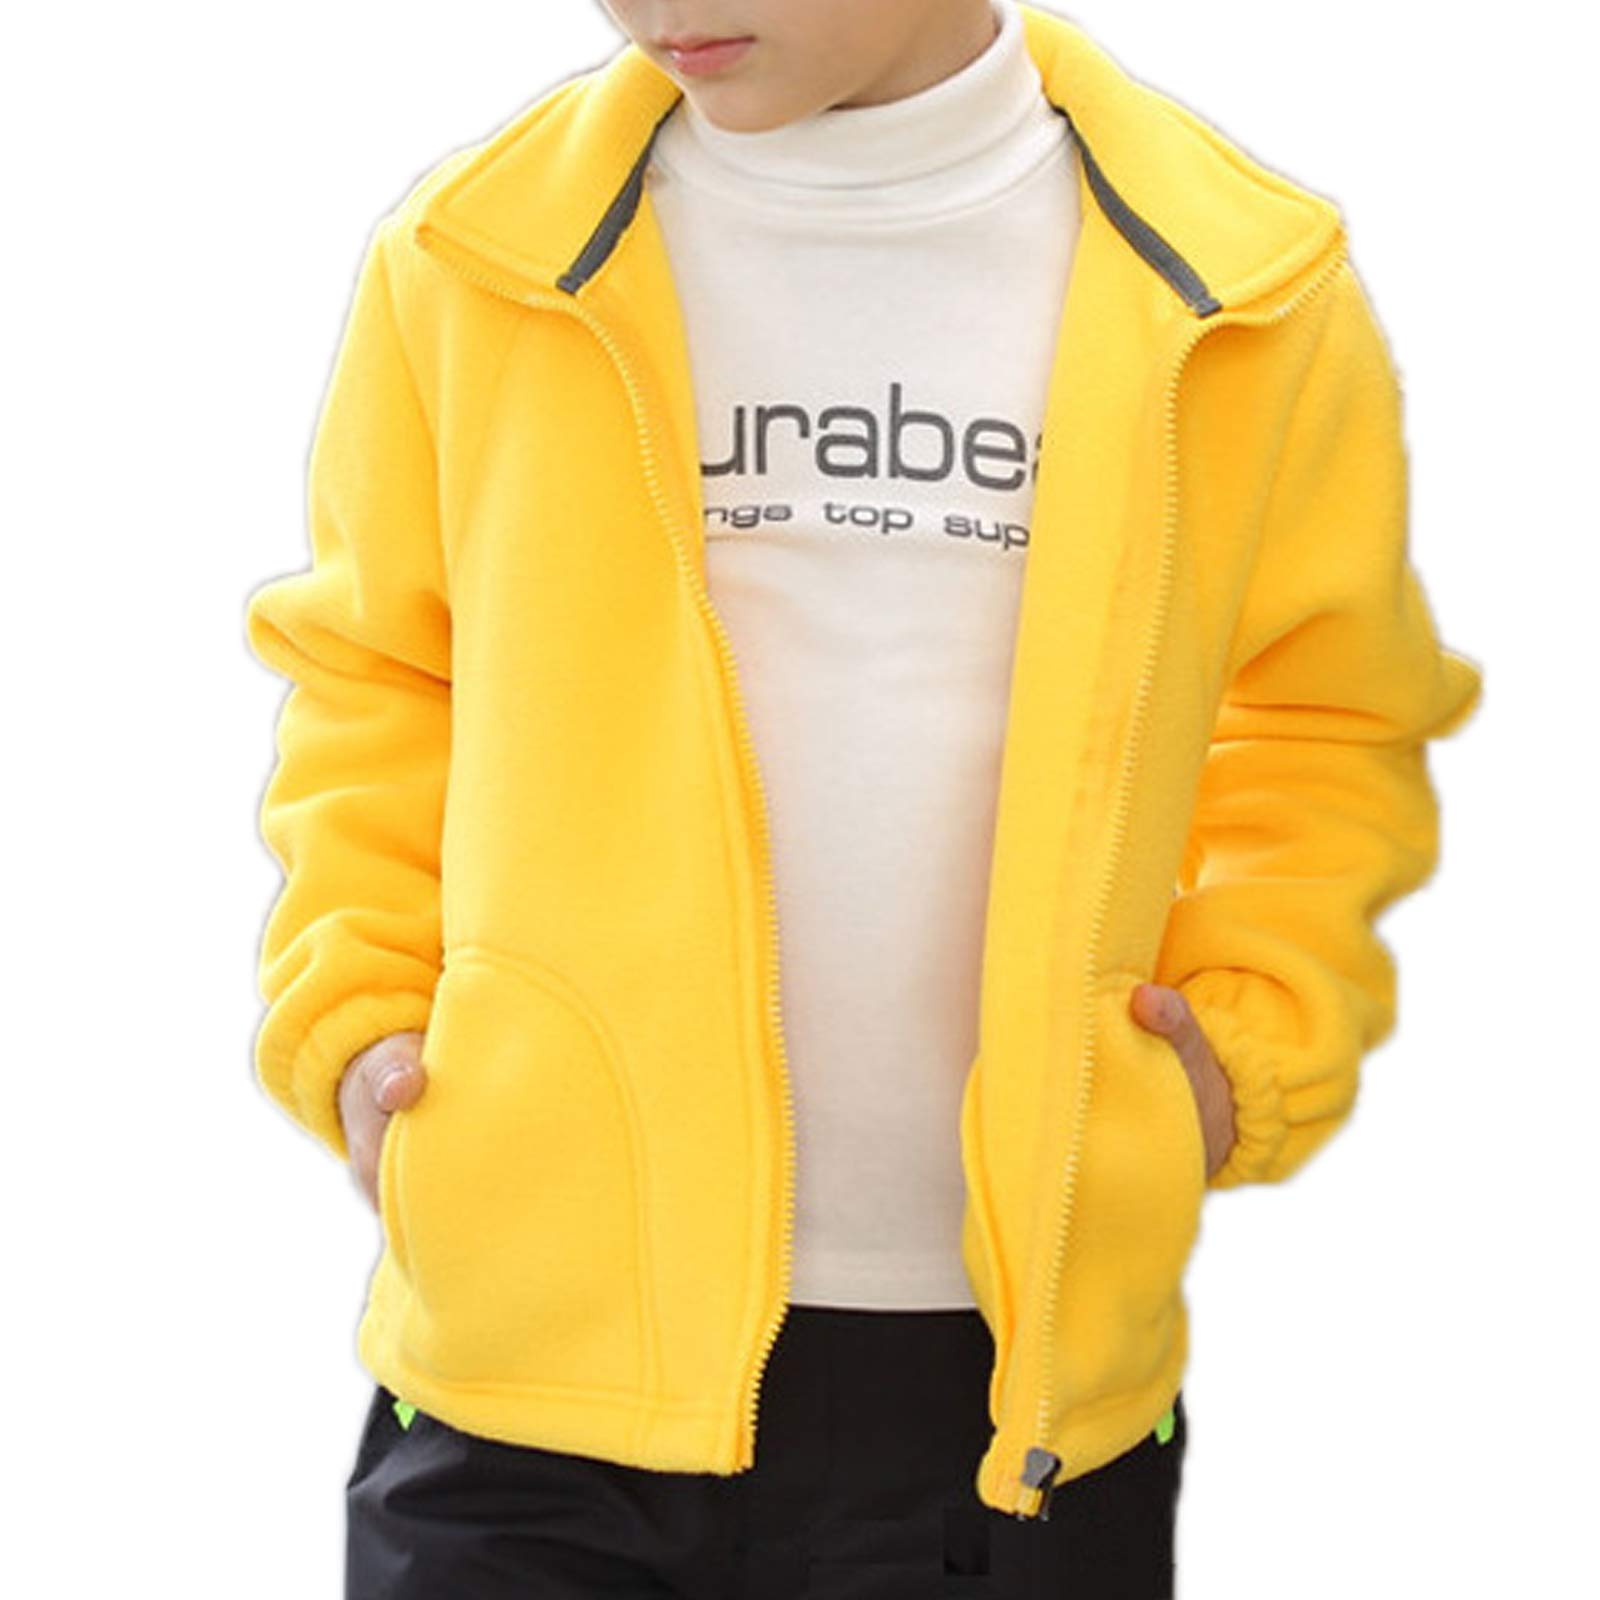 ZumZup Kids Fleece Jacket Full Zip Stand Collar Boys Sportwear Top Outwear Yellow3 Bust 31.8''(Asie XXXS) by ZumZup